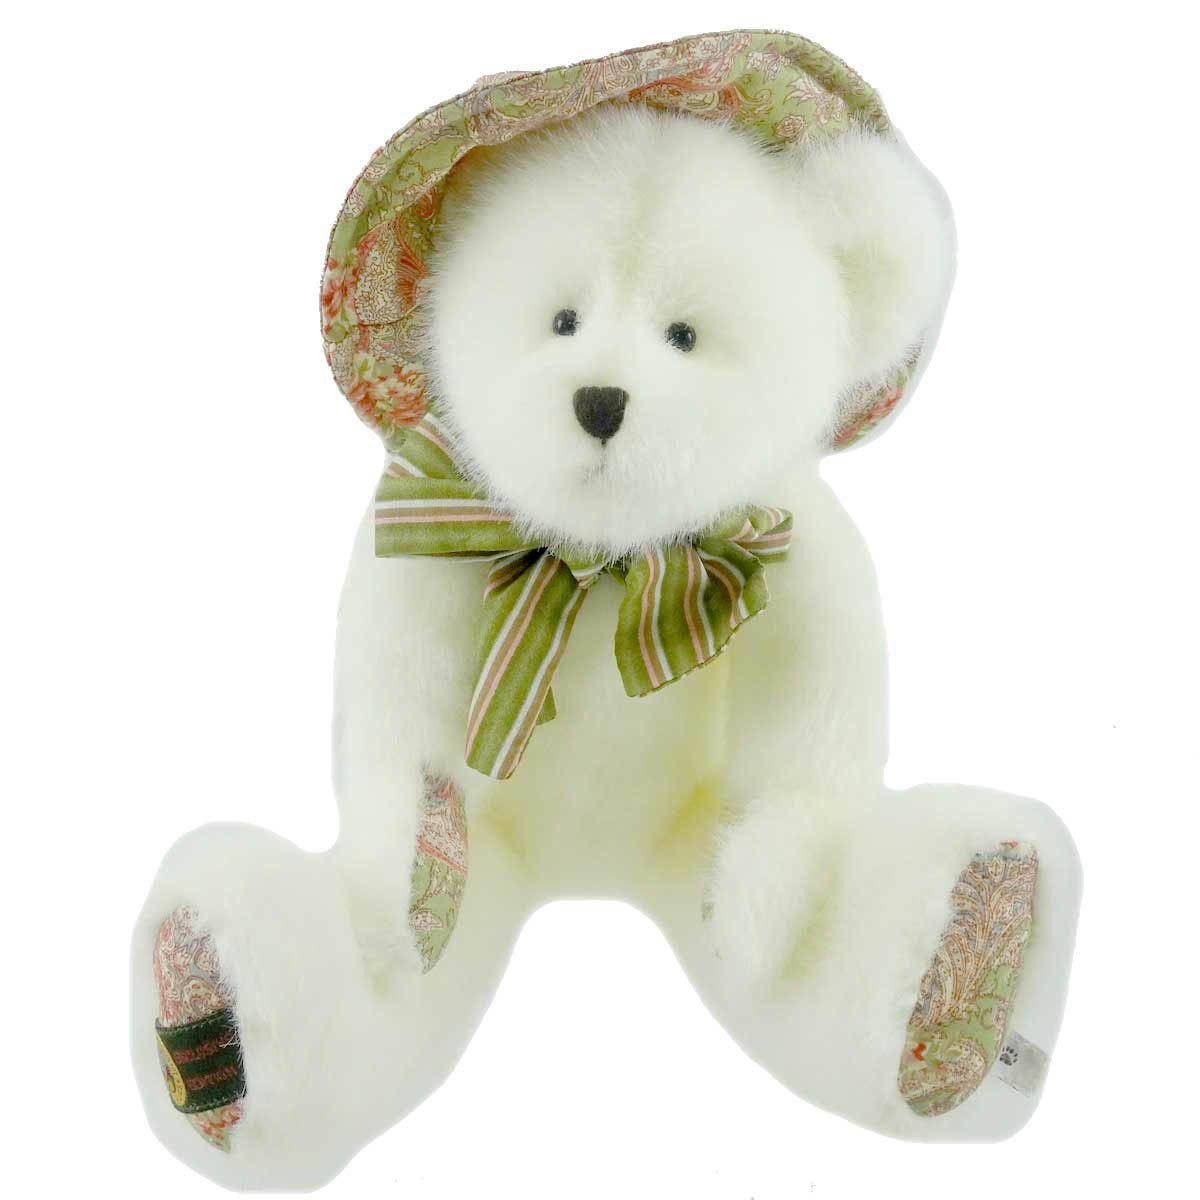 Teddy bear toys images  Olivia Sue Paisley Easter u Spring Teddy Bear  Products  Pinterest